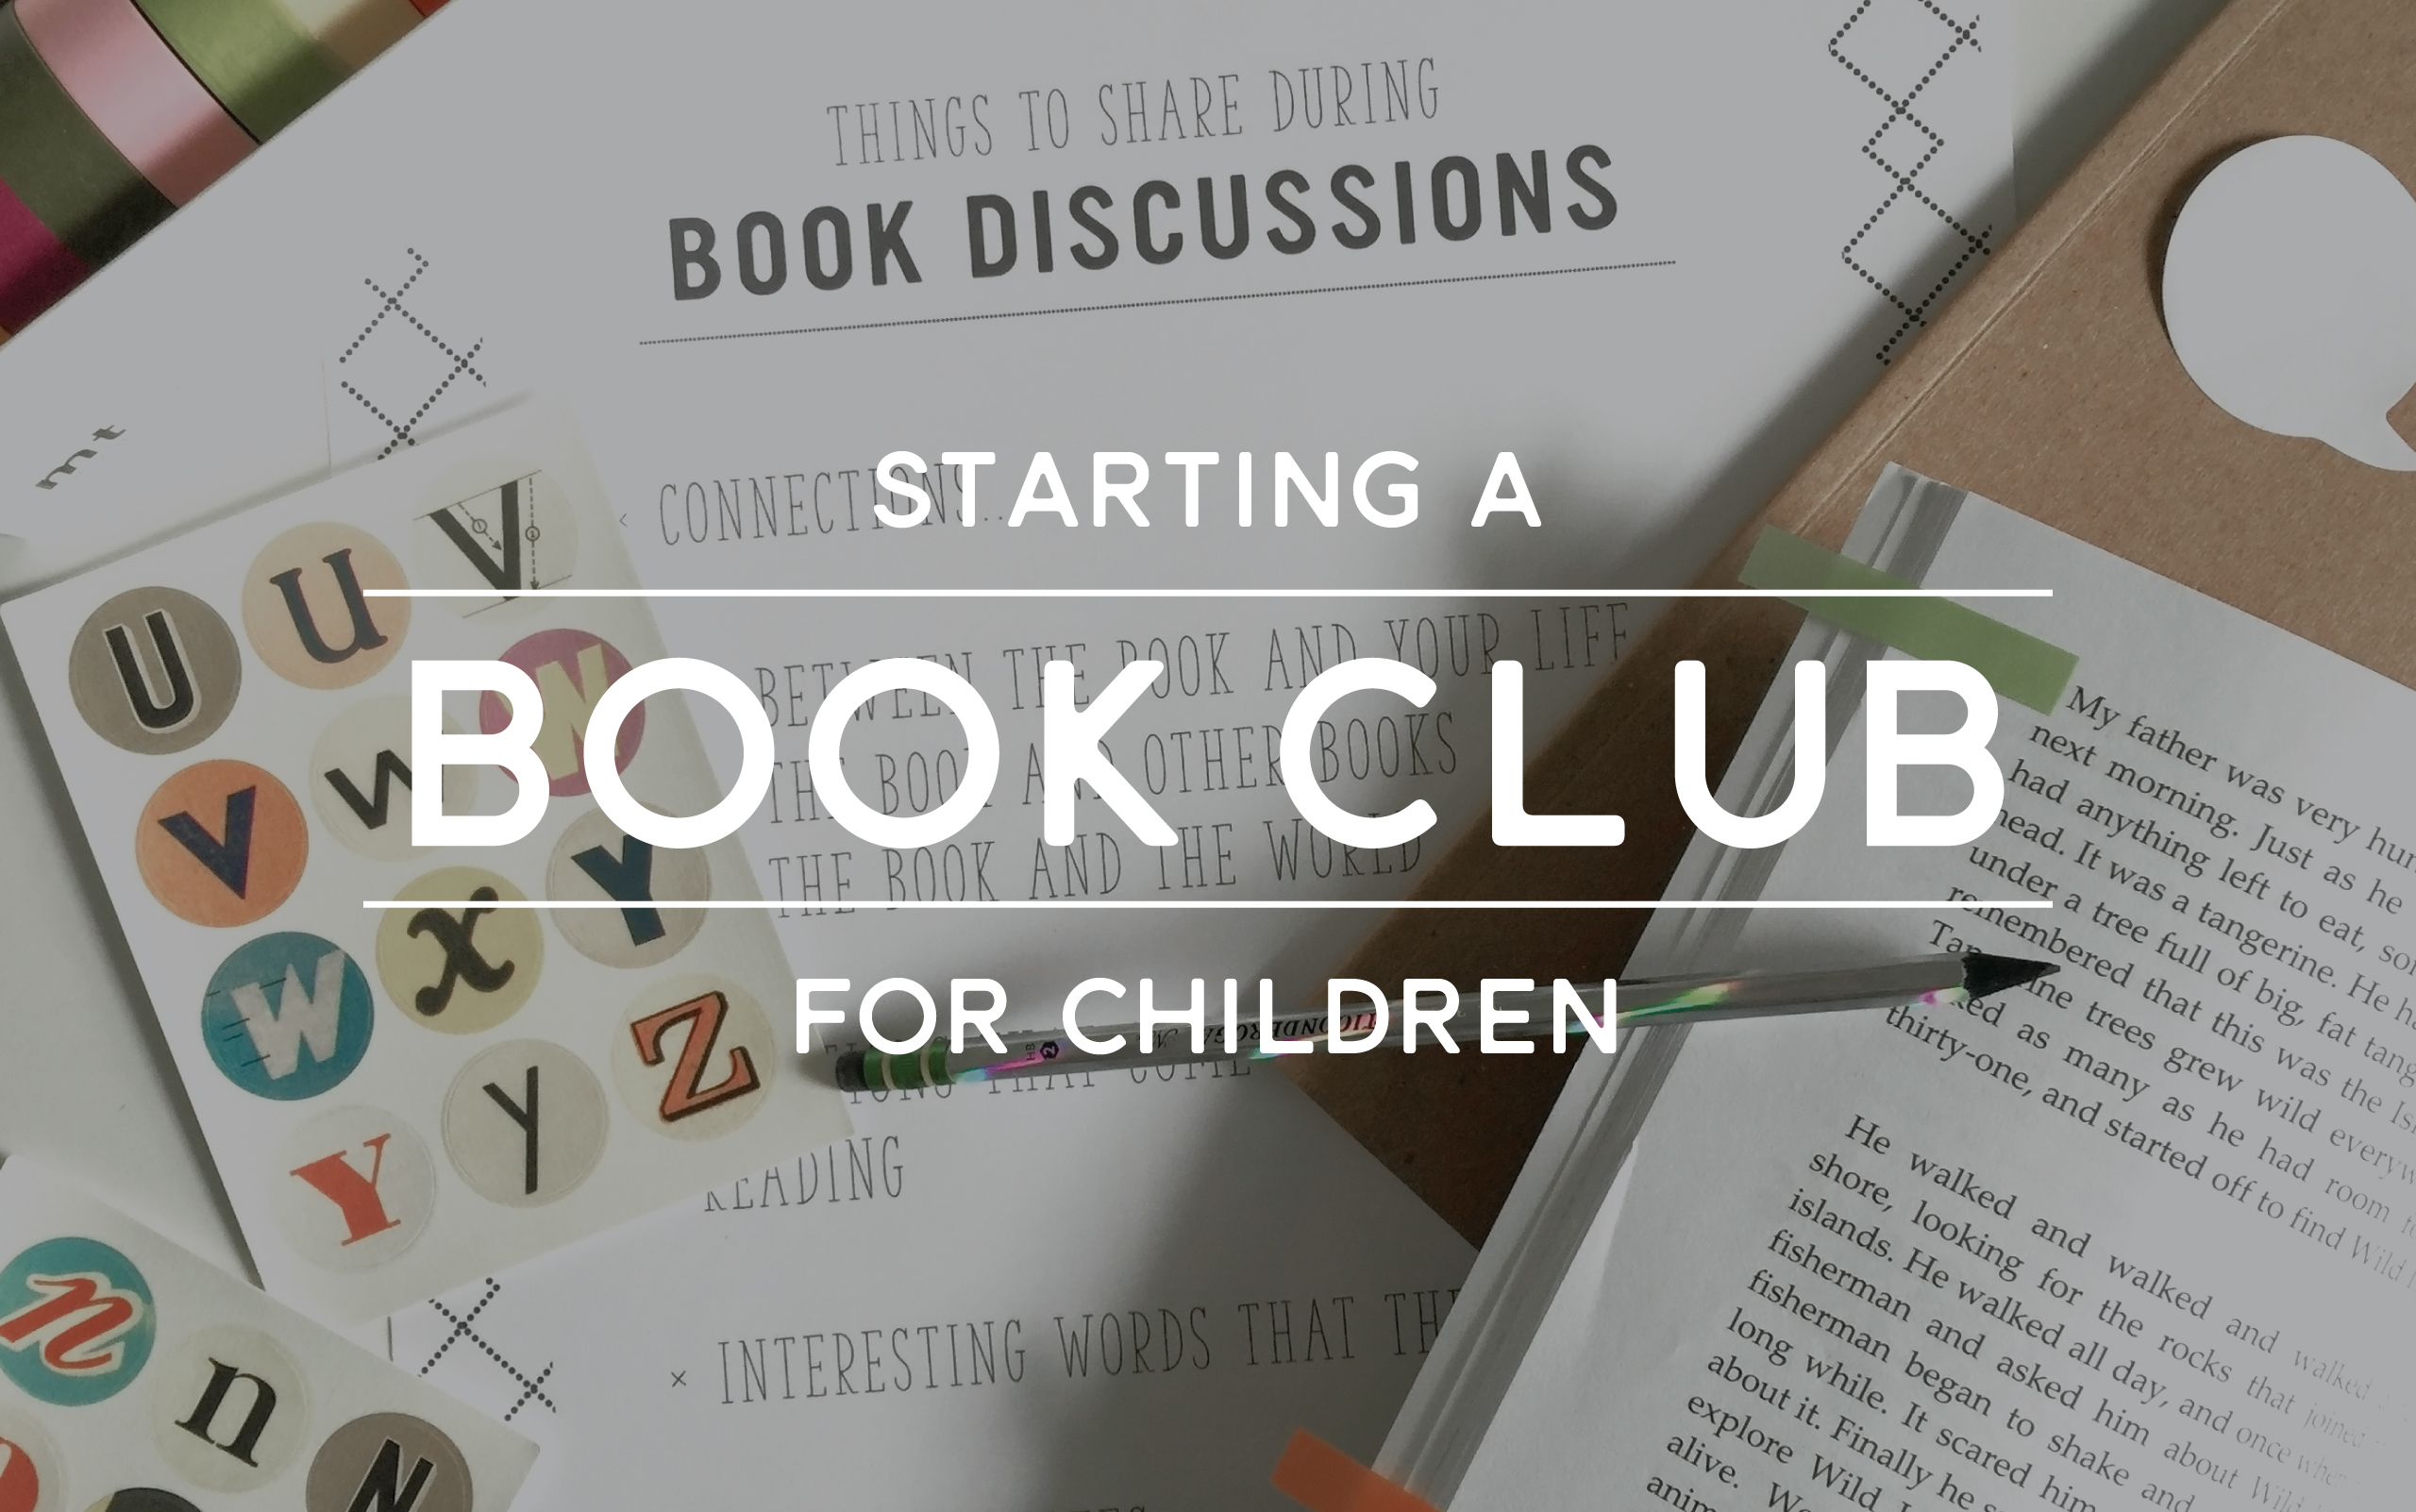 Playful Learning: Staring a Book Club for Children